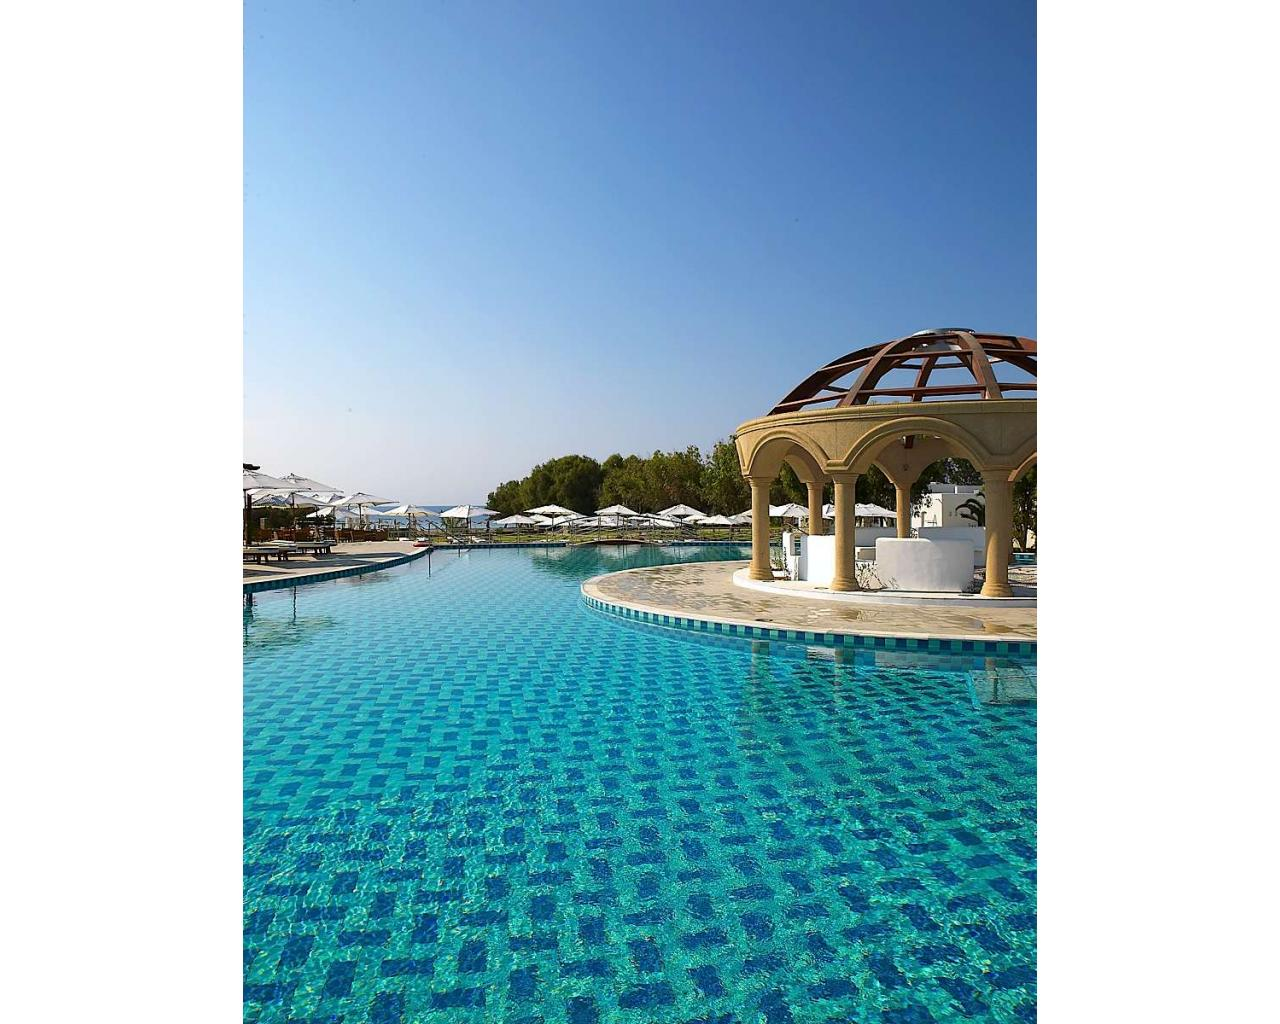 Life guards, pool attendants at 5***** Resort in Rhodos Island Greece (students)